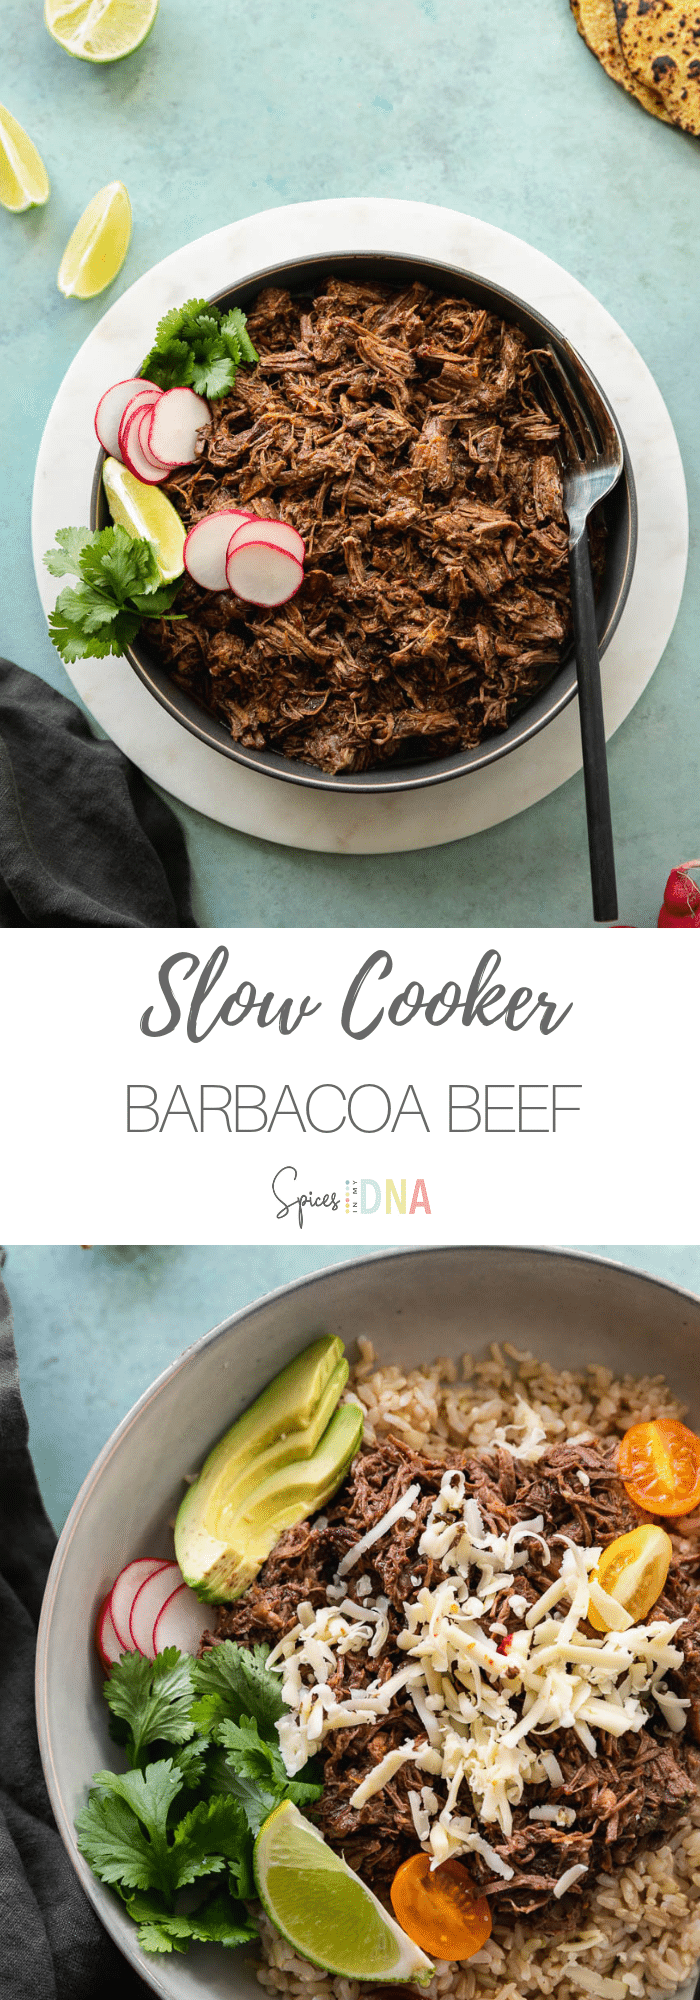 This Slow Cooker Barbacoa Beef is an insanely delicious take on the Mexican shredded beef you see in burrito bowls and tacos! It's unbelievably flavorful, easy to make, and it's super versatile! It's great for feeding a large crowd, or to make for meal prep to have on hand all week! #barbacoabeef #barbacoa #beef #slowcooker #crockpot #mexican